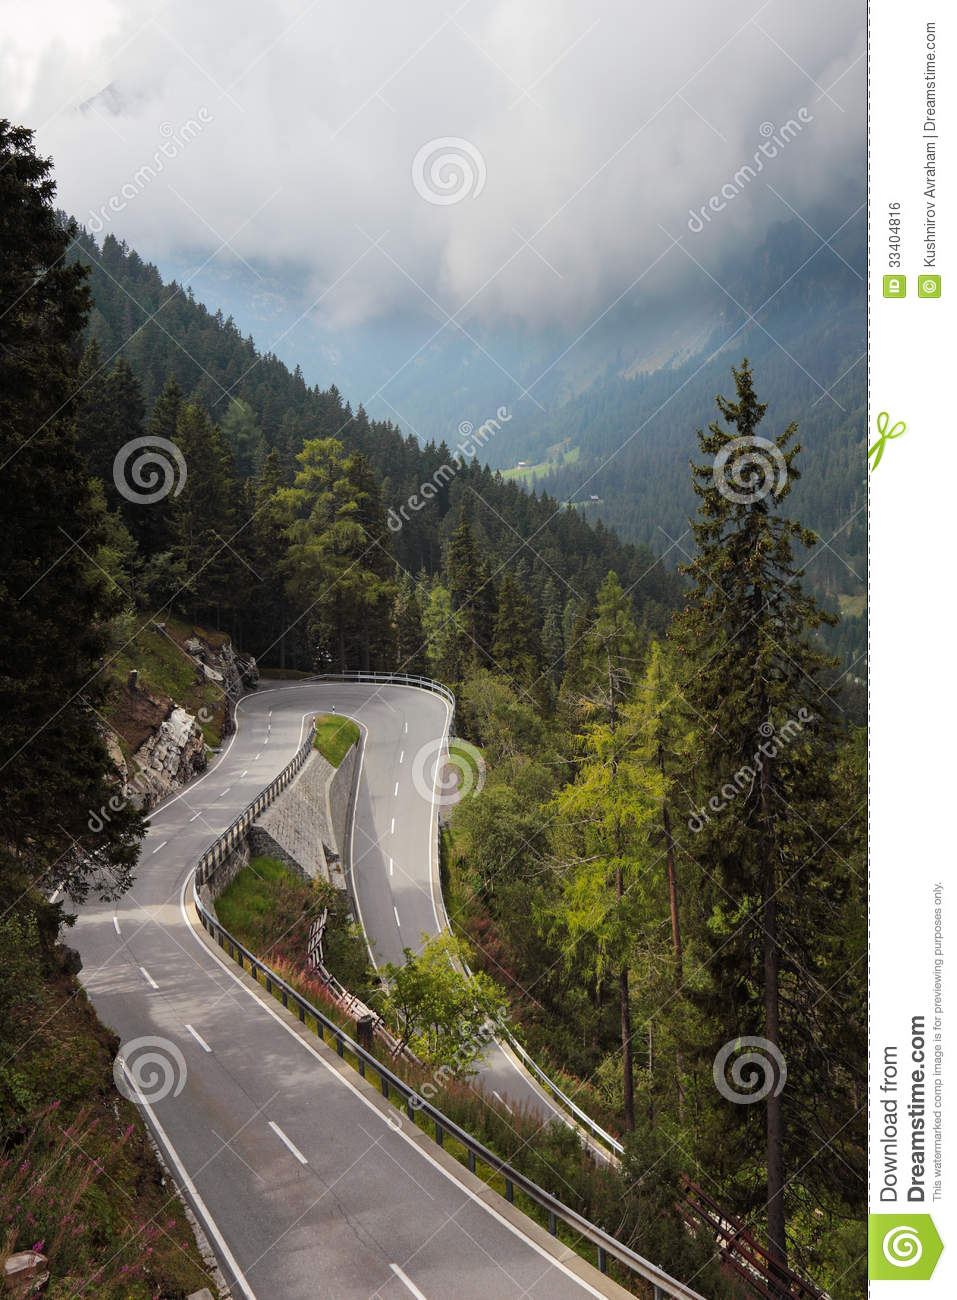 Time Road Id Roblox: Winding And Dangerous Mountain Road Stock Photo